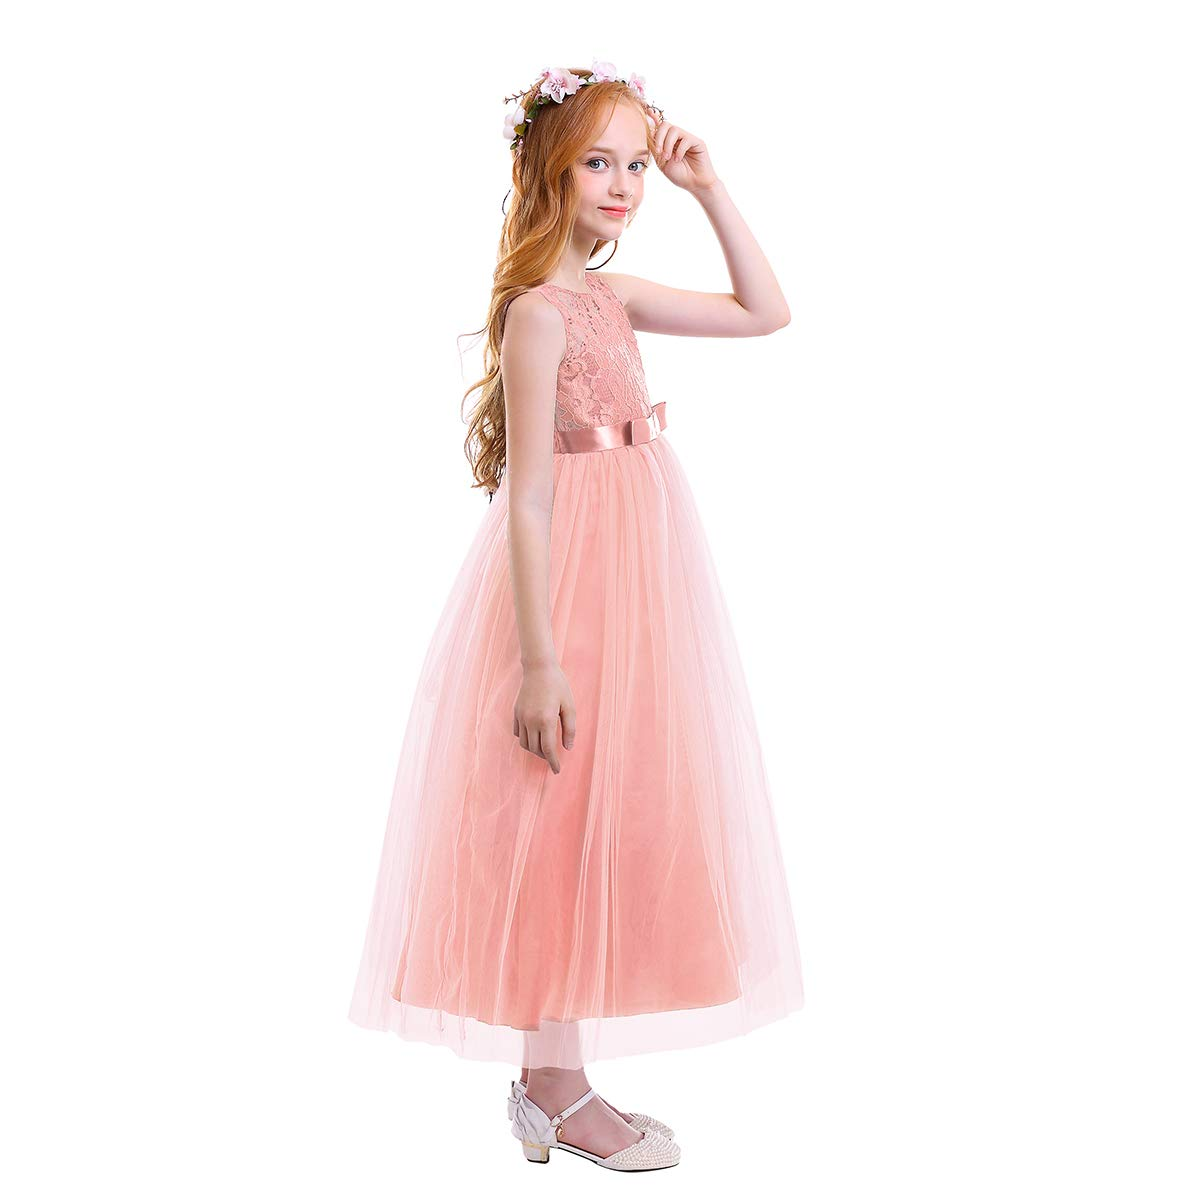 40bd1b3840049 Amazon.com: FYMNSI Big Girls Tulle Lace Dress Wedding Communion Evening  Birthday Party Bowknot Dress Flower Girl Princess Dress 6-15T: Clothing